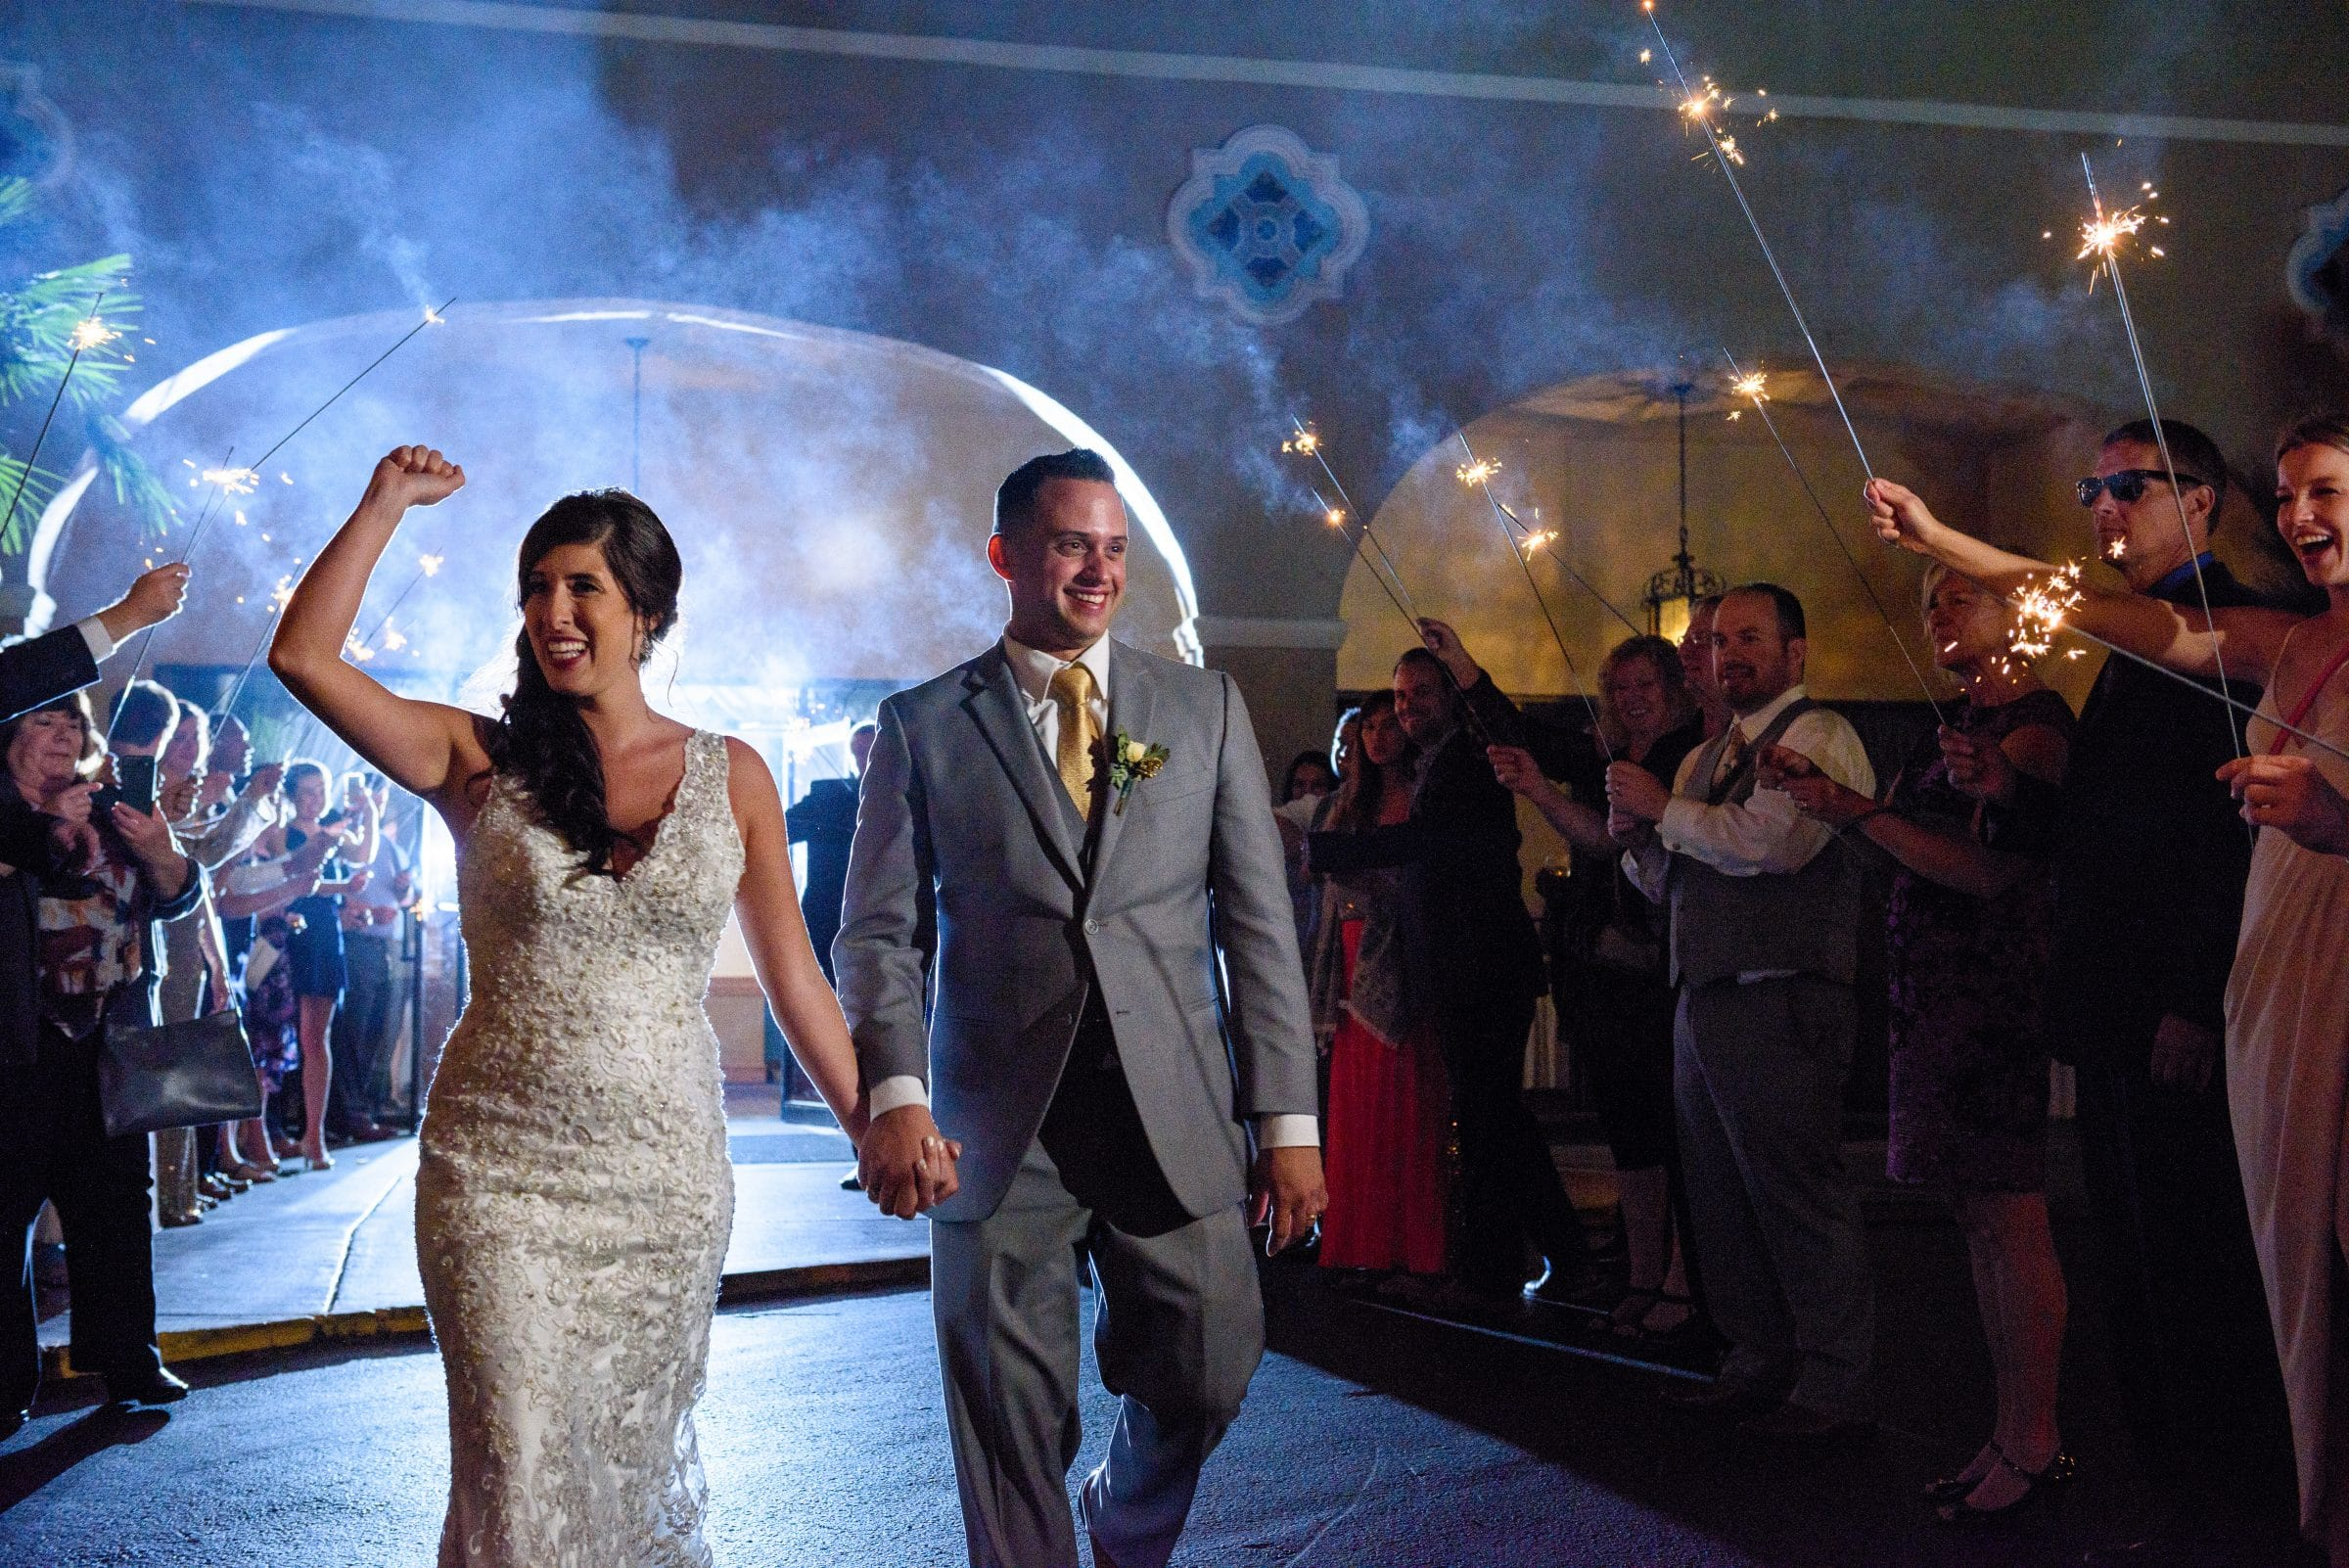 Bride and groom cheering during sparkler sendoff